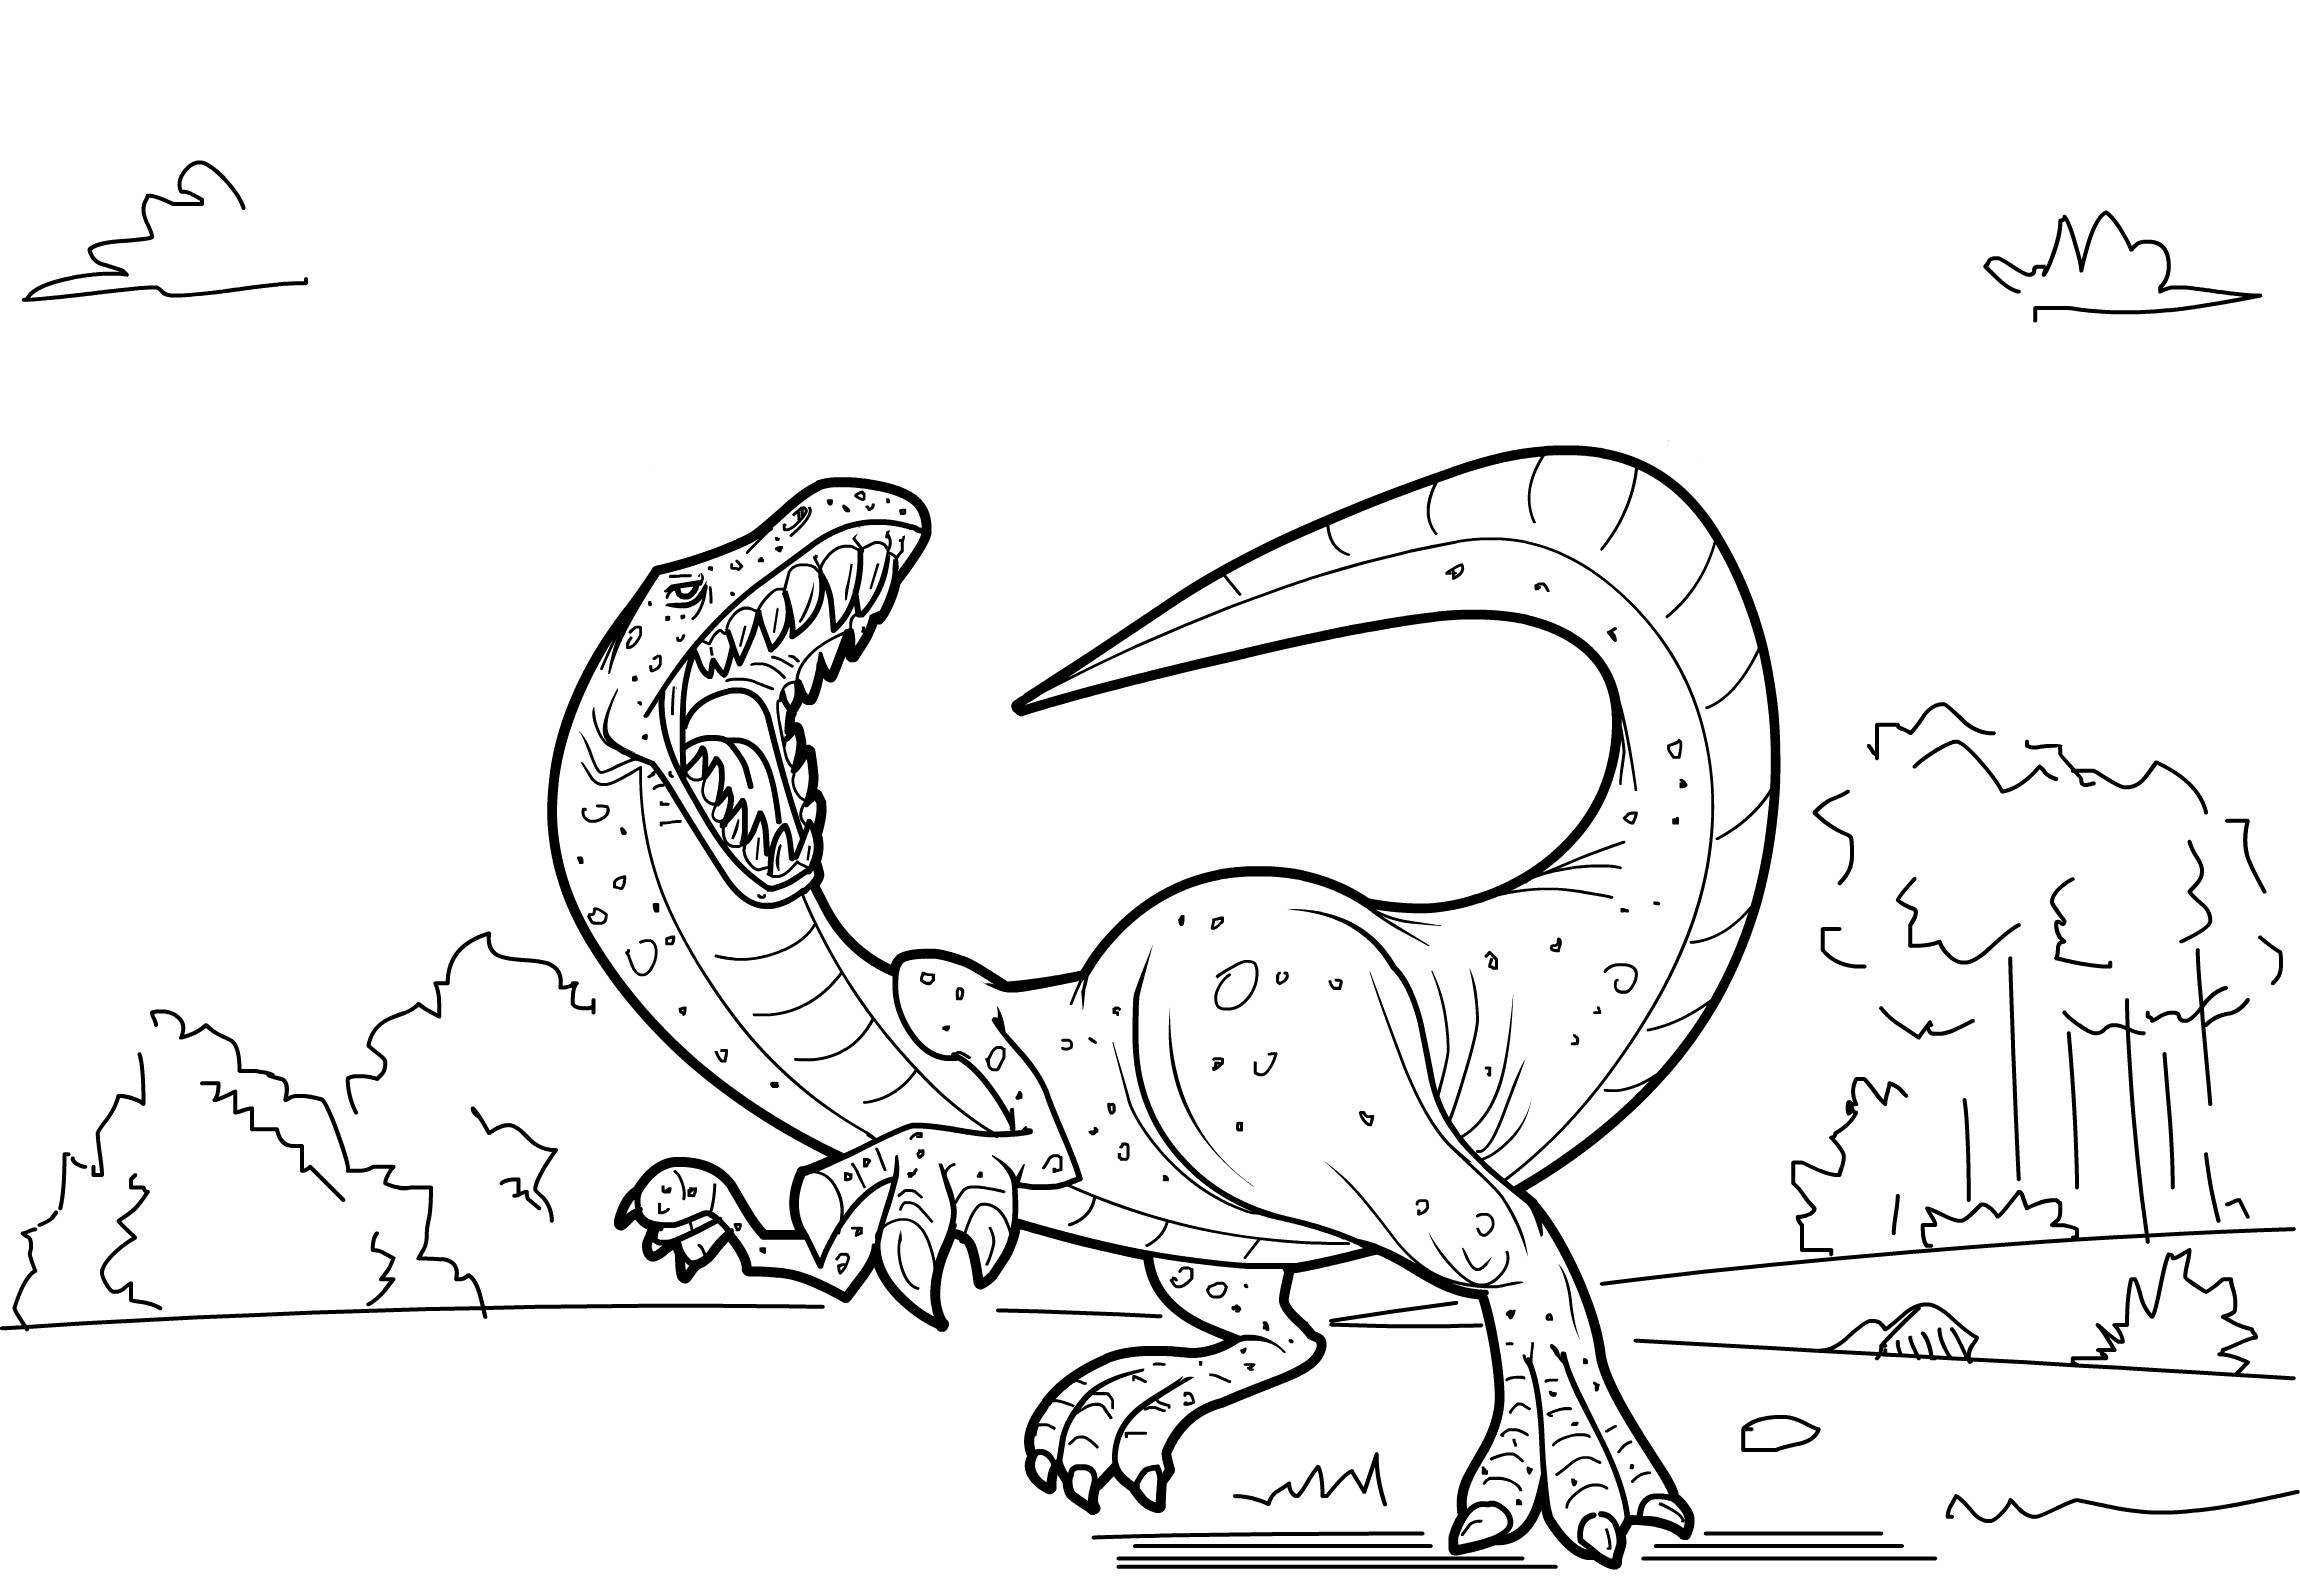 dinosaur coloring pages for kids cute dinosaur coloring pages for kids coloring home kids dinosaur coloring pages for